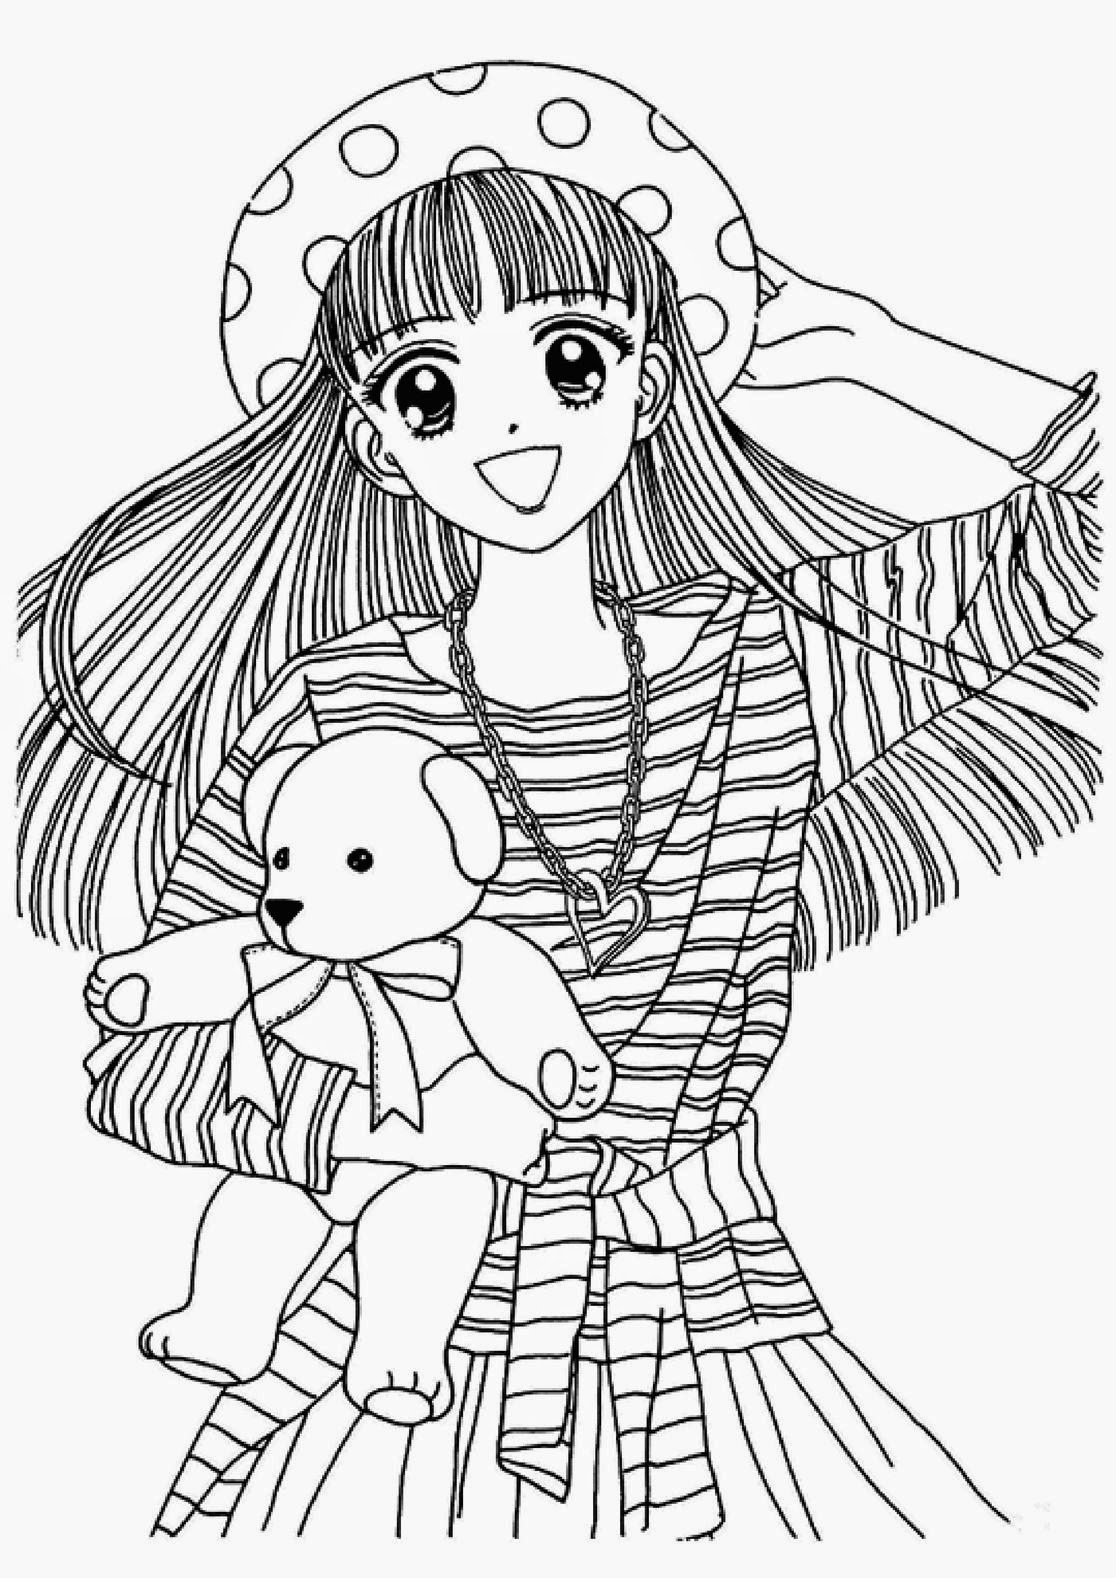 colering pages for girls printable coloring pages for girls ideas whitesbelfast pages girls colering for